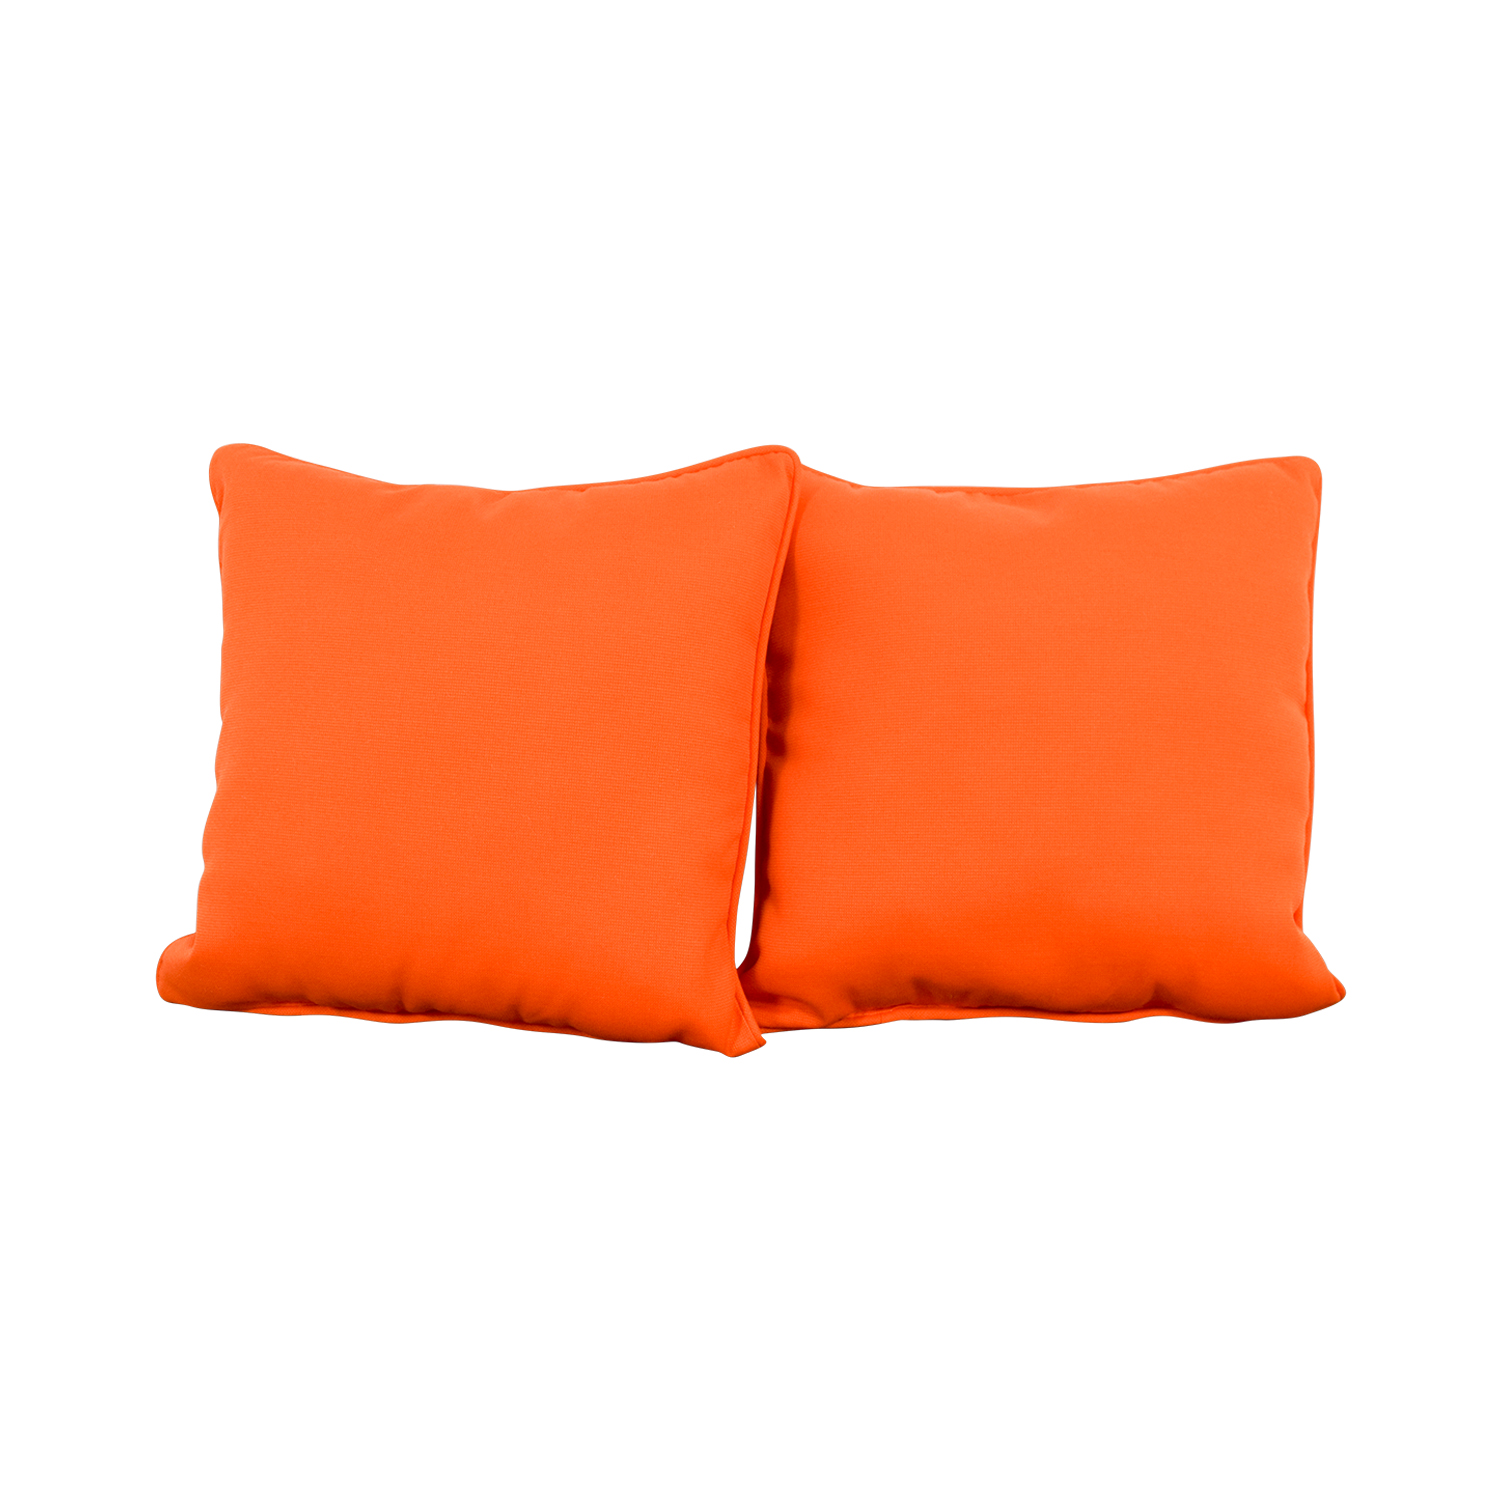 Pillow Perfect Pillow Perfect Sundeck Corded Orange Throw Pillows second hand